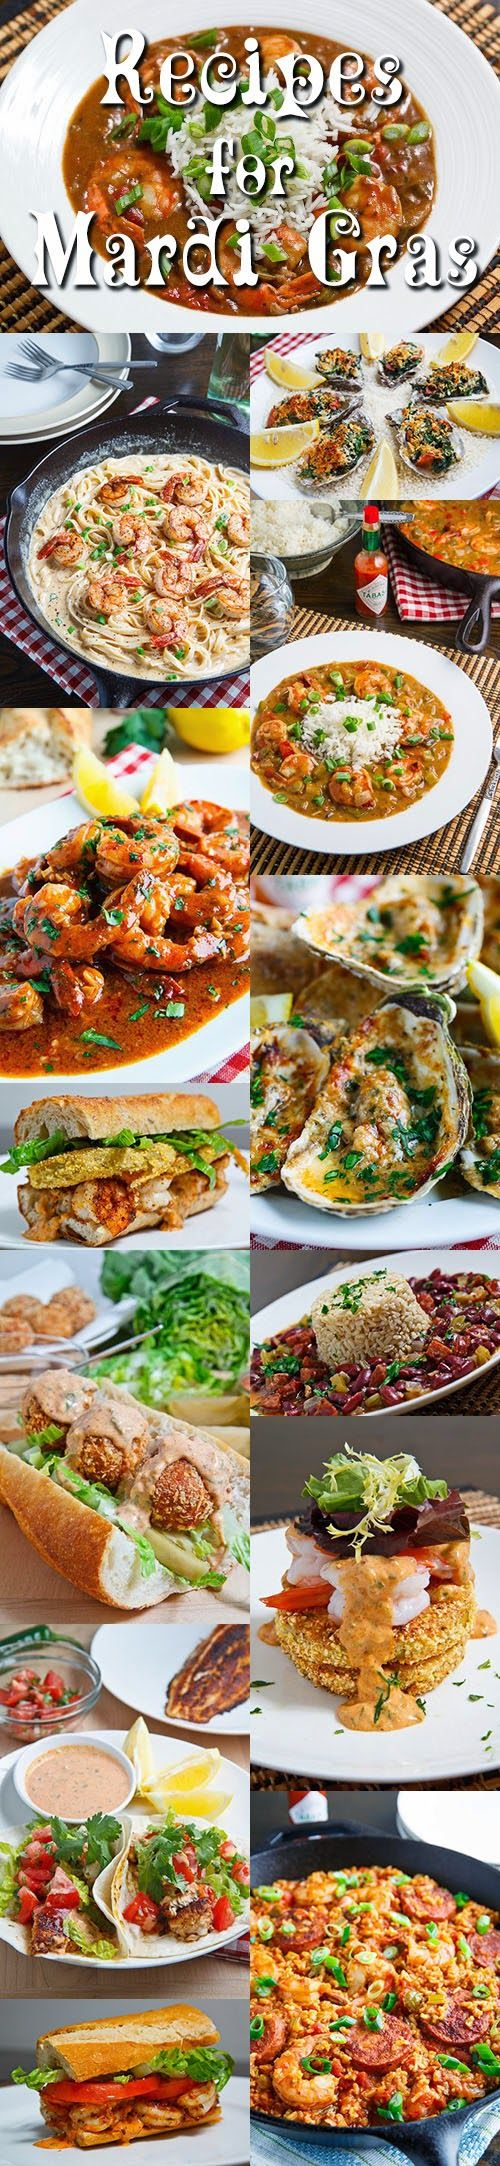 Recipes for Mardi Gras from Closet Cooking. Great New Orleans recipes.